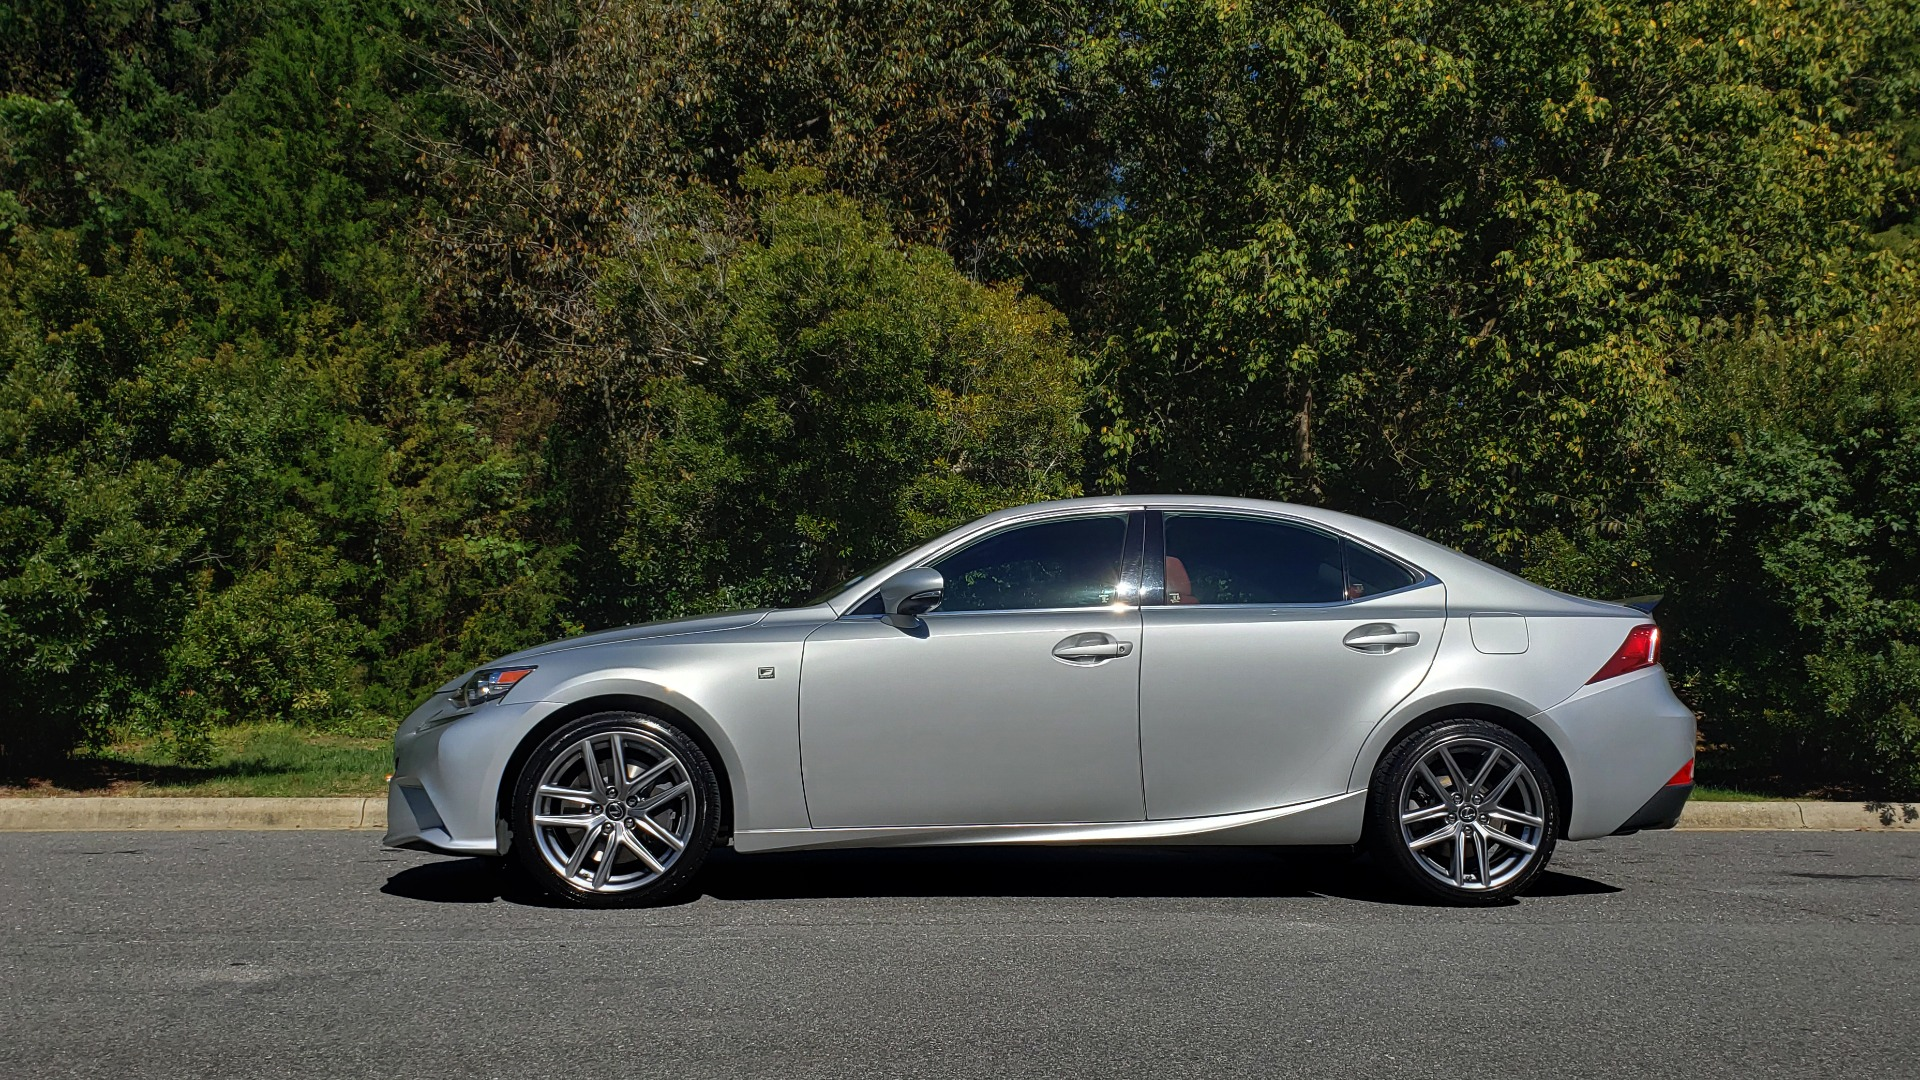 Used 2015 Lexus IS 350 F-SPORT / AWD / NAV / SUNROOF / BSM / REARVIEW for sale Sold at Formula Imports in Charlotte NC 28227 2